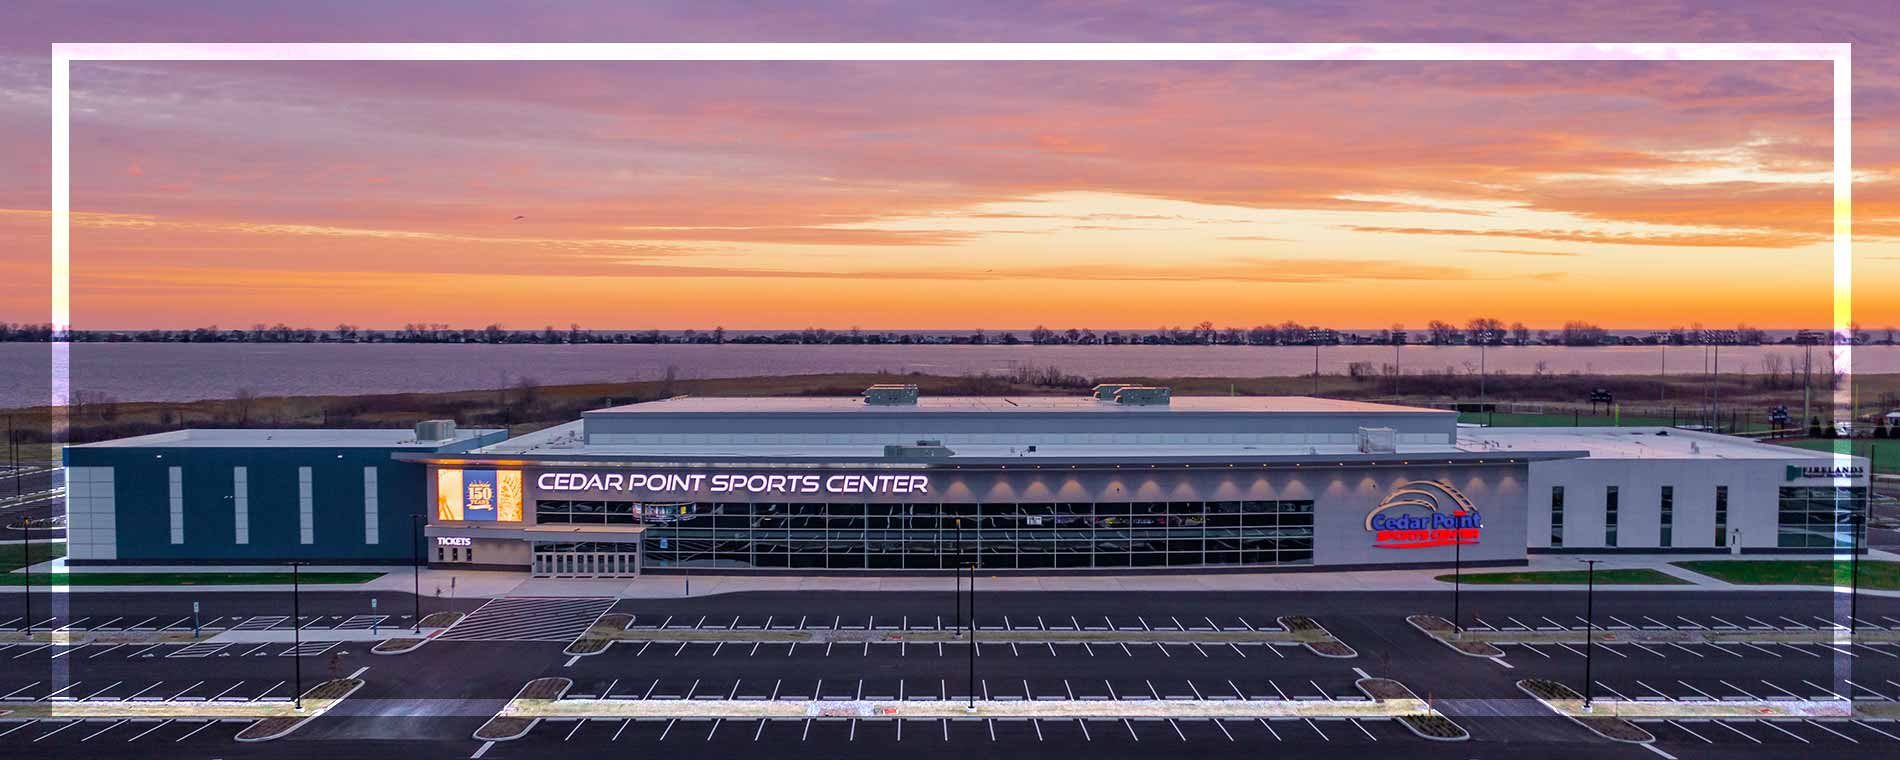 Cedar Point Sports Center Exterior Sunset 1